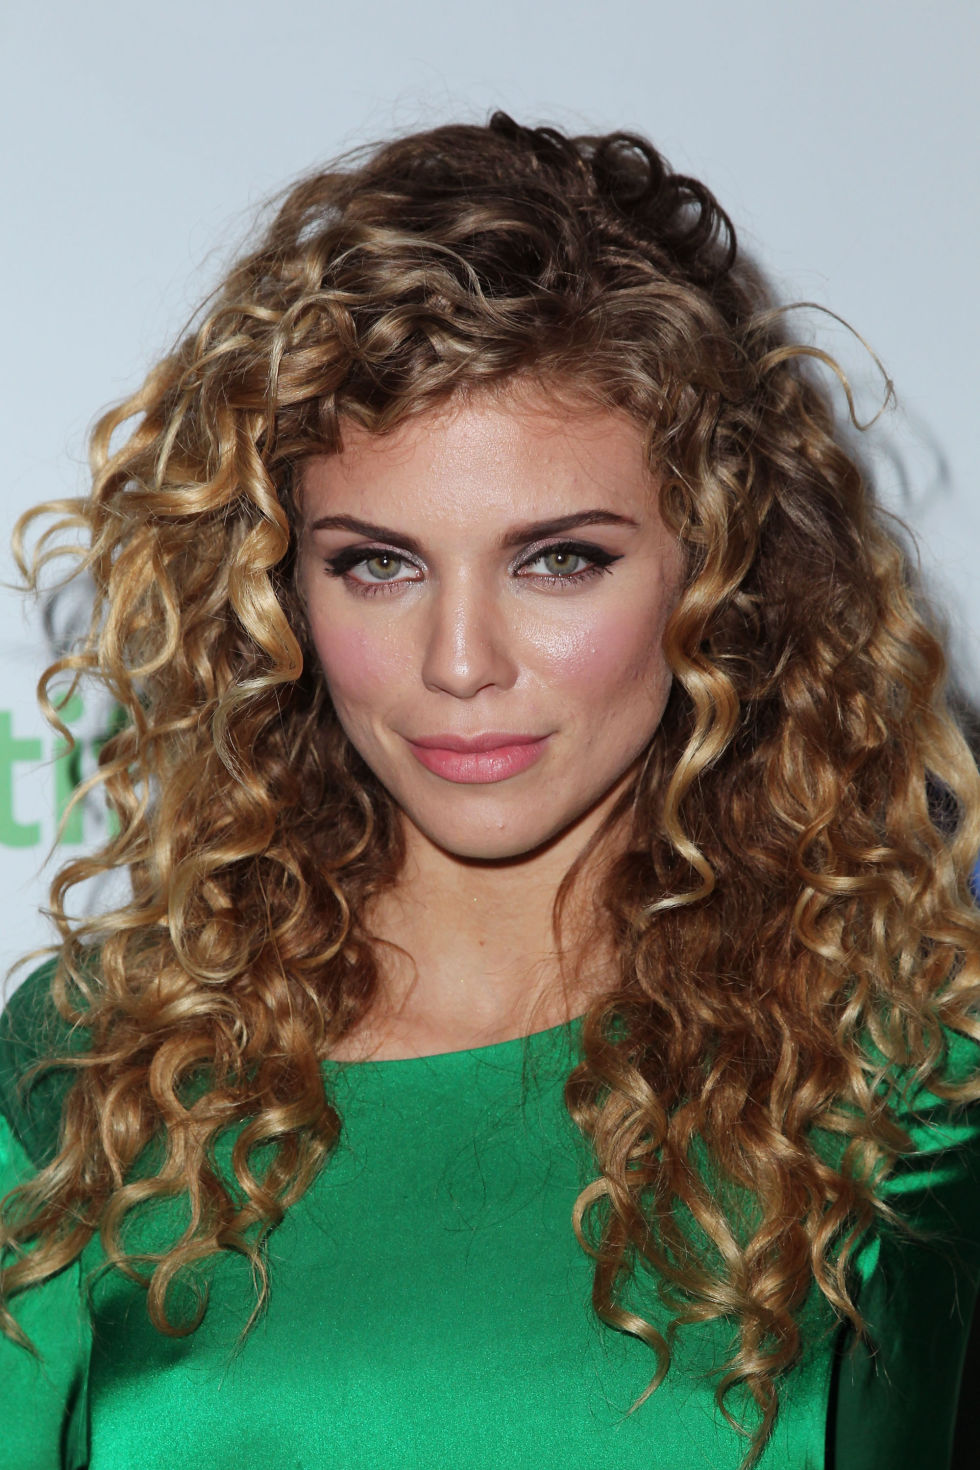 Admirable 30 Best Curly Hairstyles Of 2017 Cute Hairstyles For Curly Hair Short Hairstyles Gunalazisus